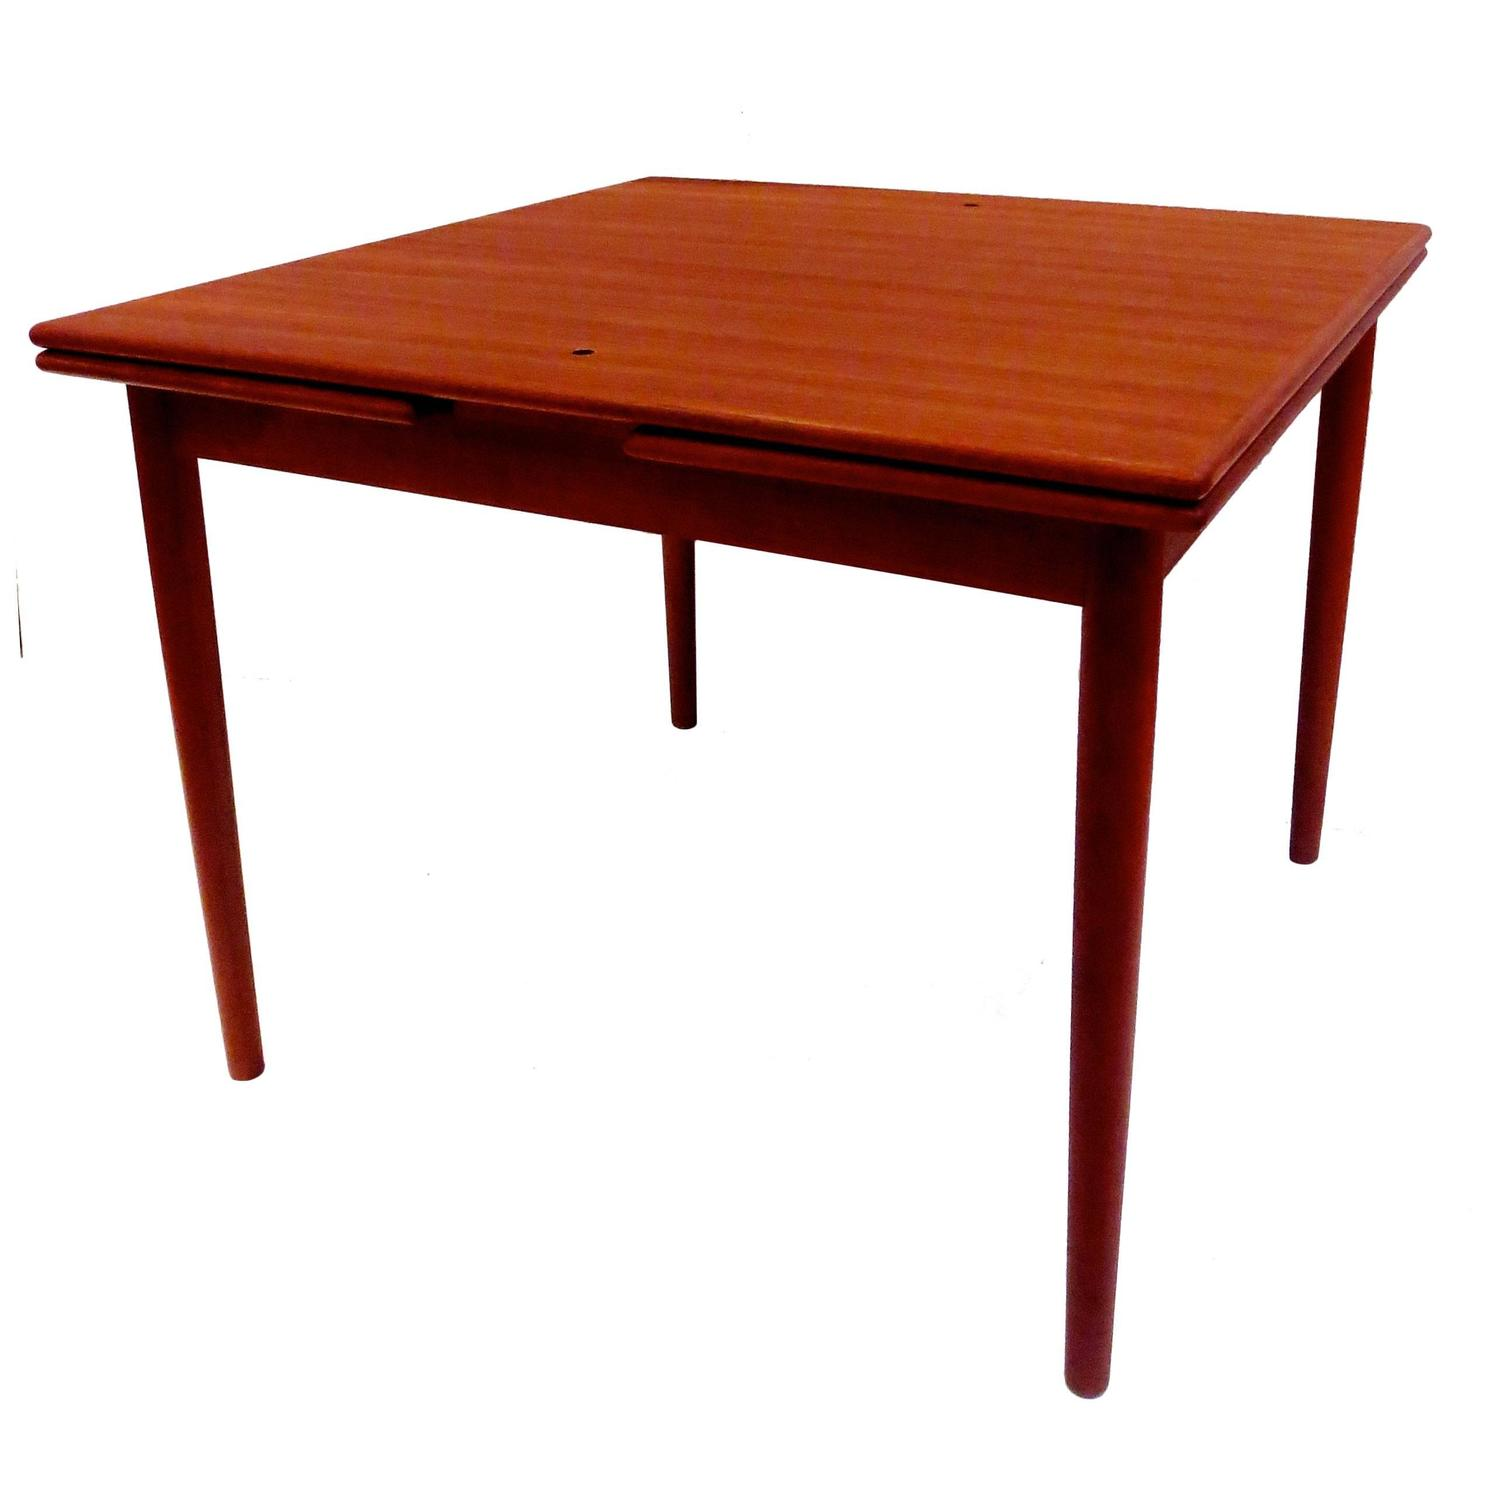 Georg petersen danish modern flip top teak and leather for Danish modern dining room table